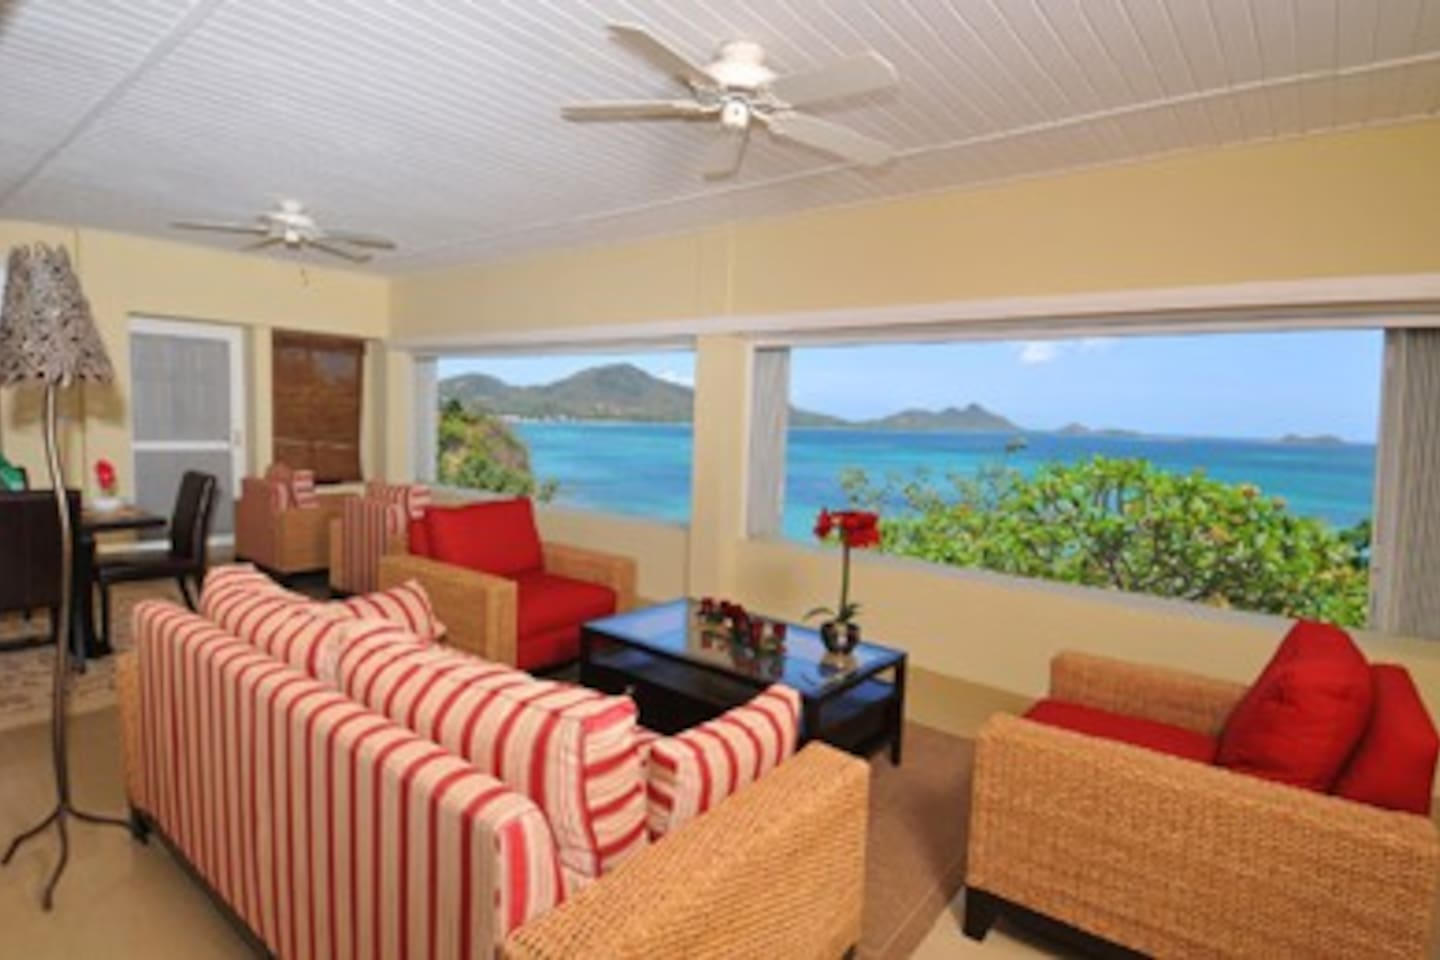 Living Room with panoramic views over the bay and town